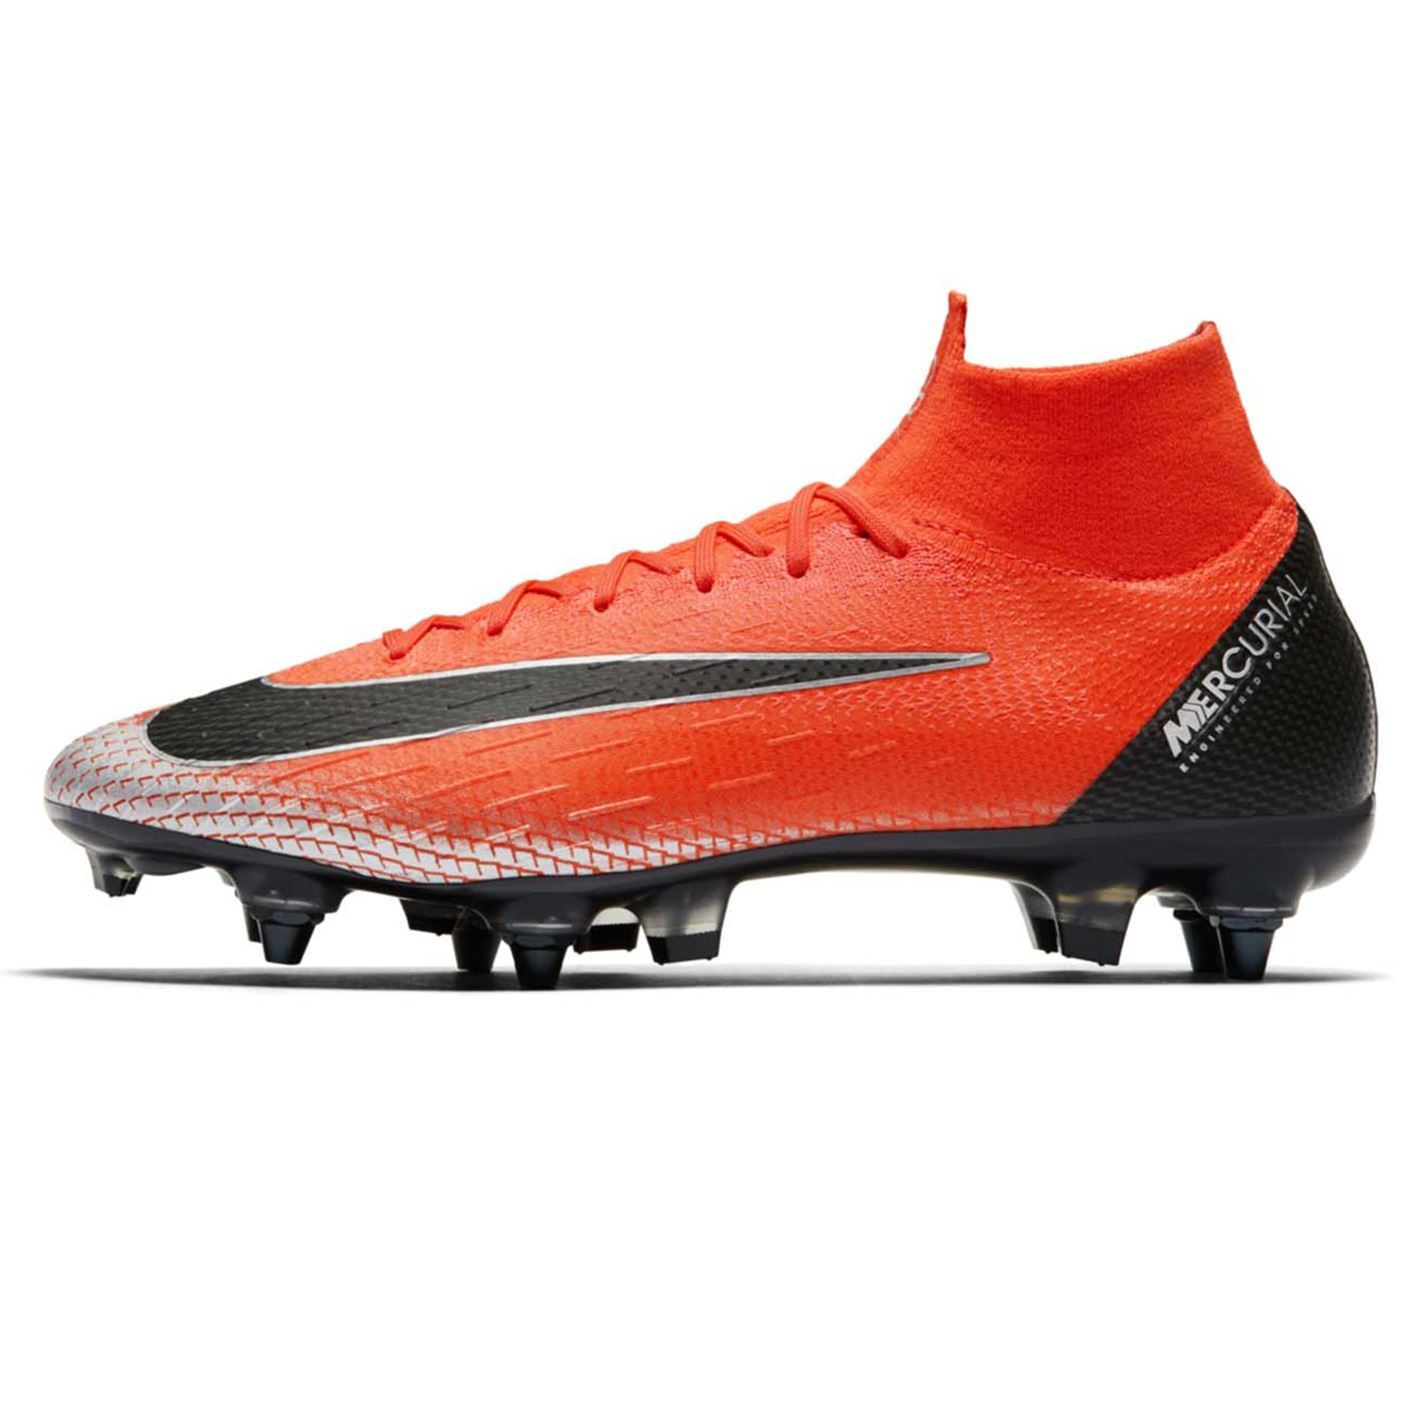 Nike Mercurial Superfly Elite CR7 DF SG Football Boots Mens Red Soccer  Cleats a49ba0ca45cfa